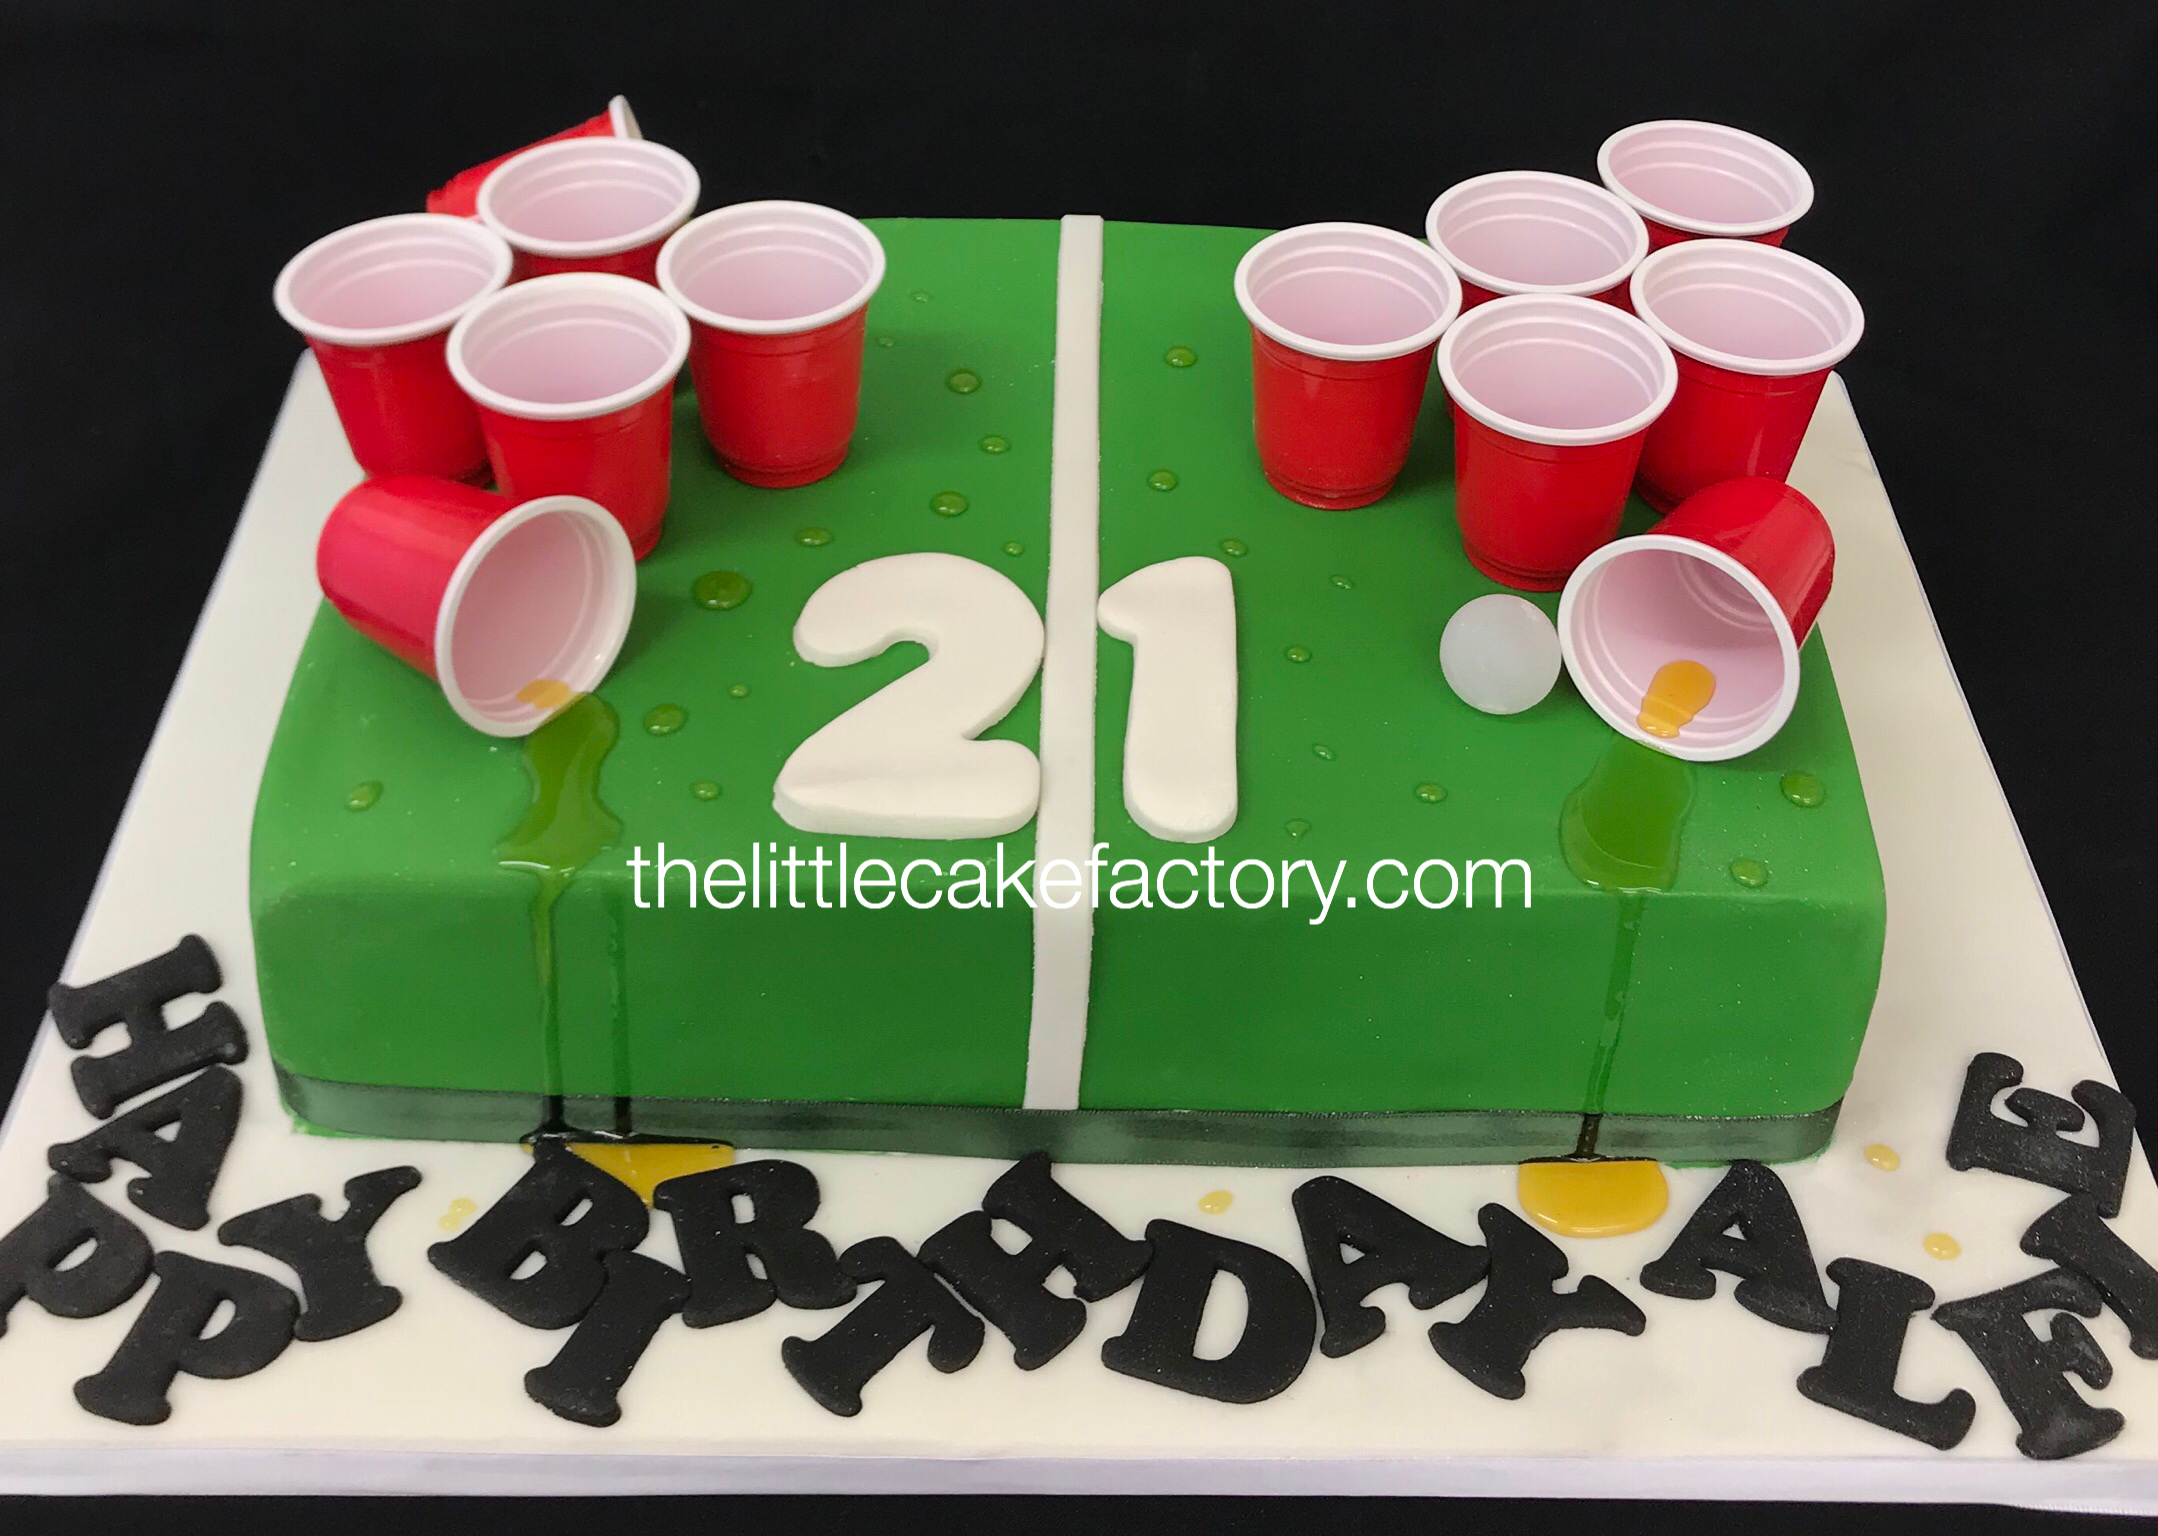 beer pong 21st cake Cake | Celebration Cakes